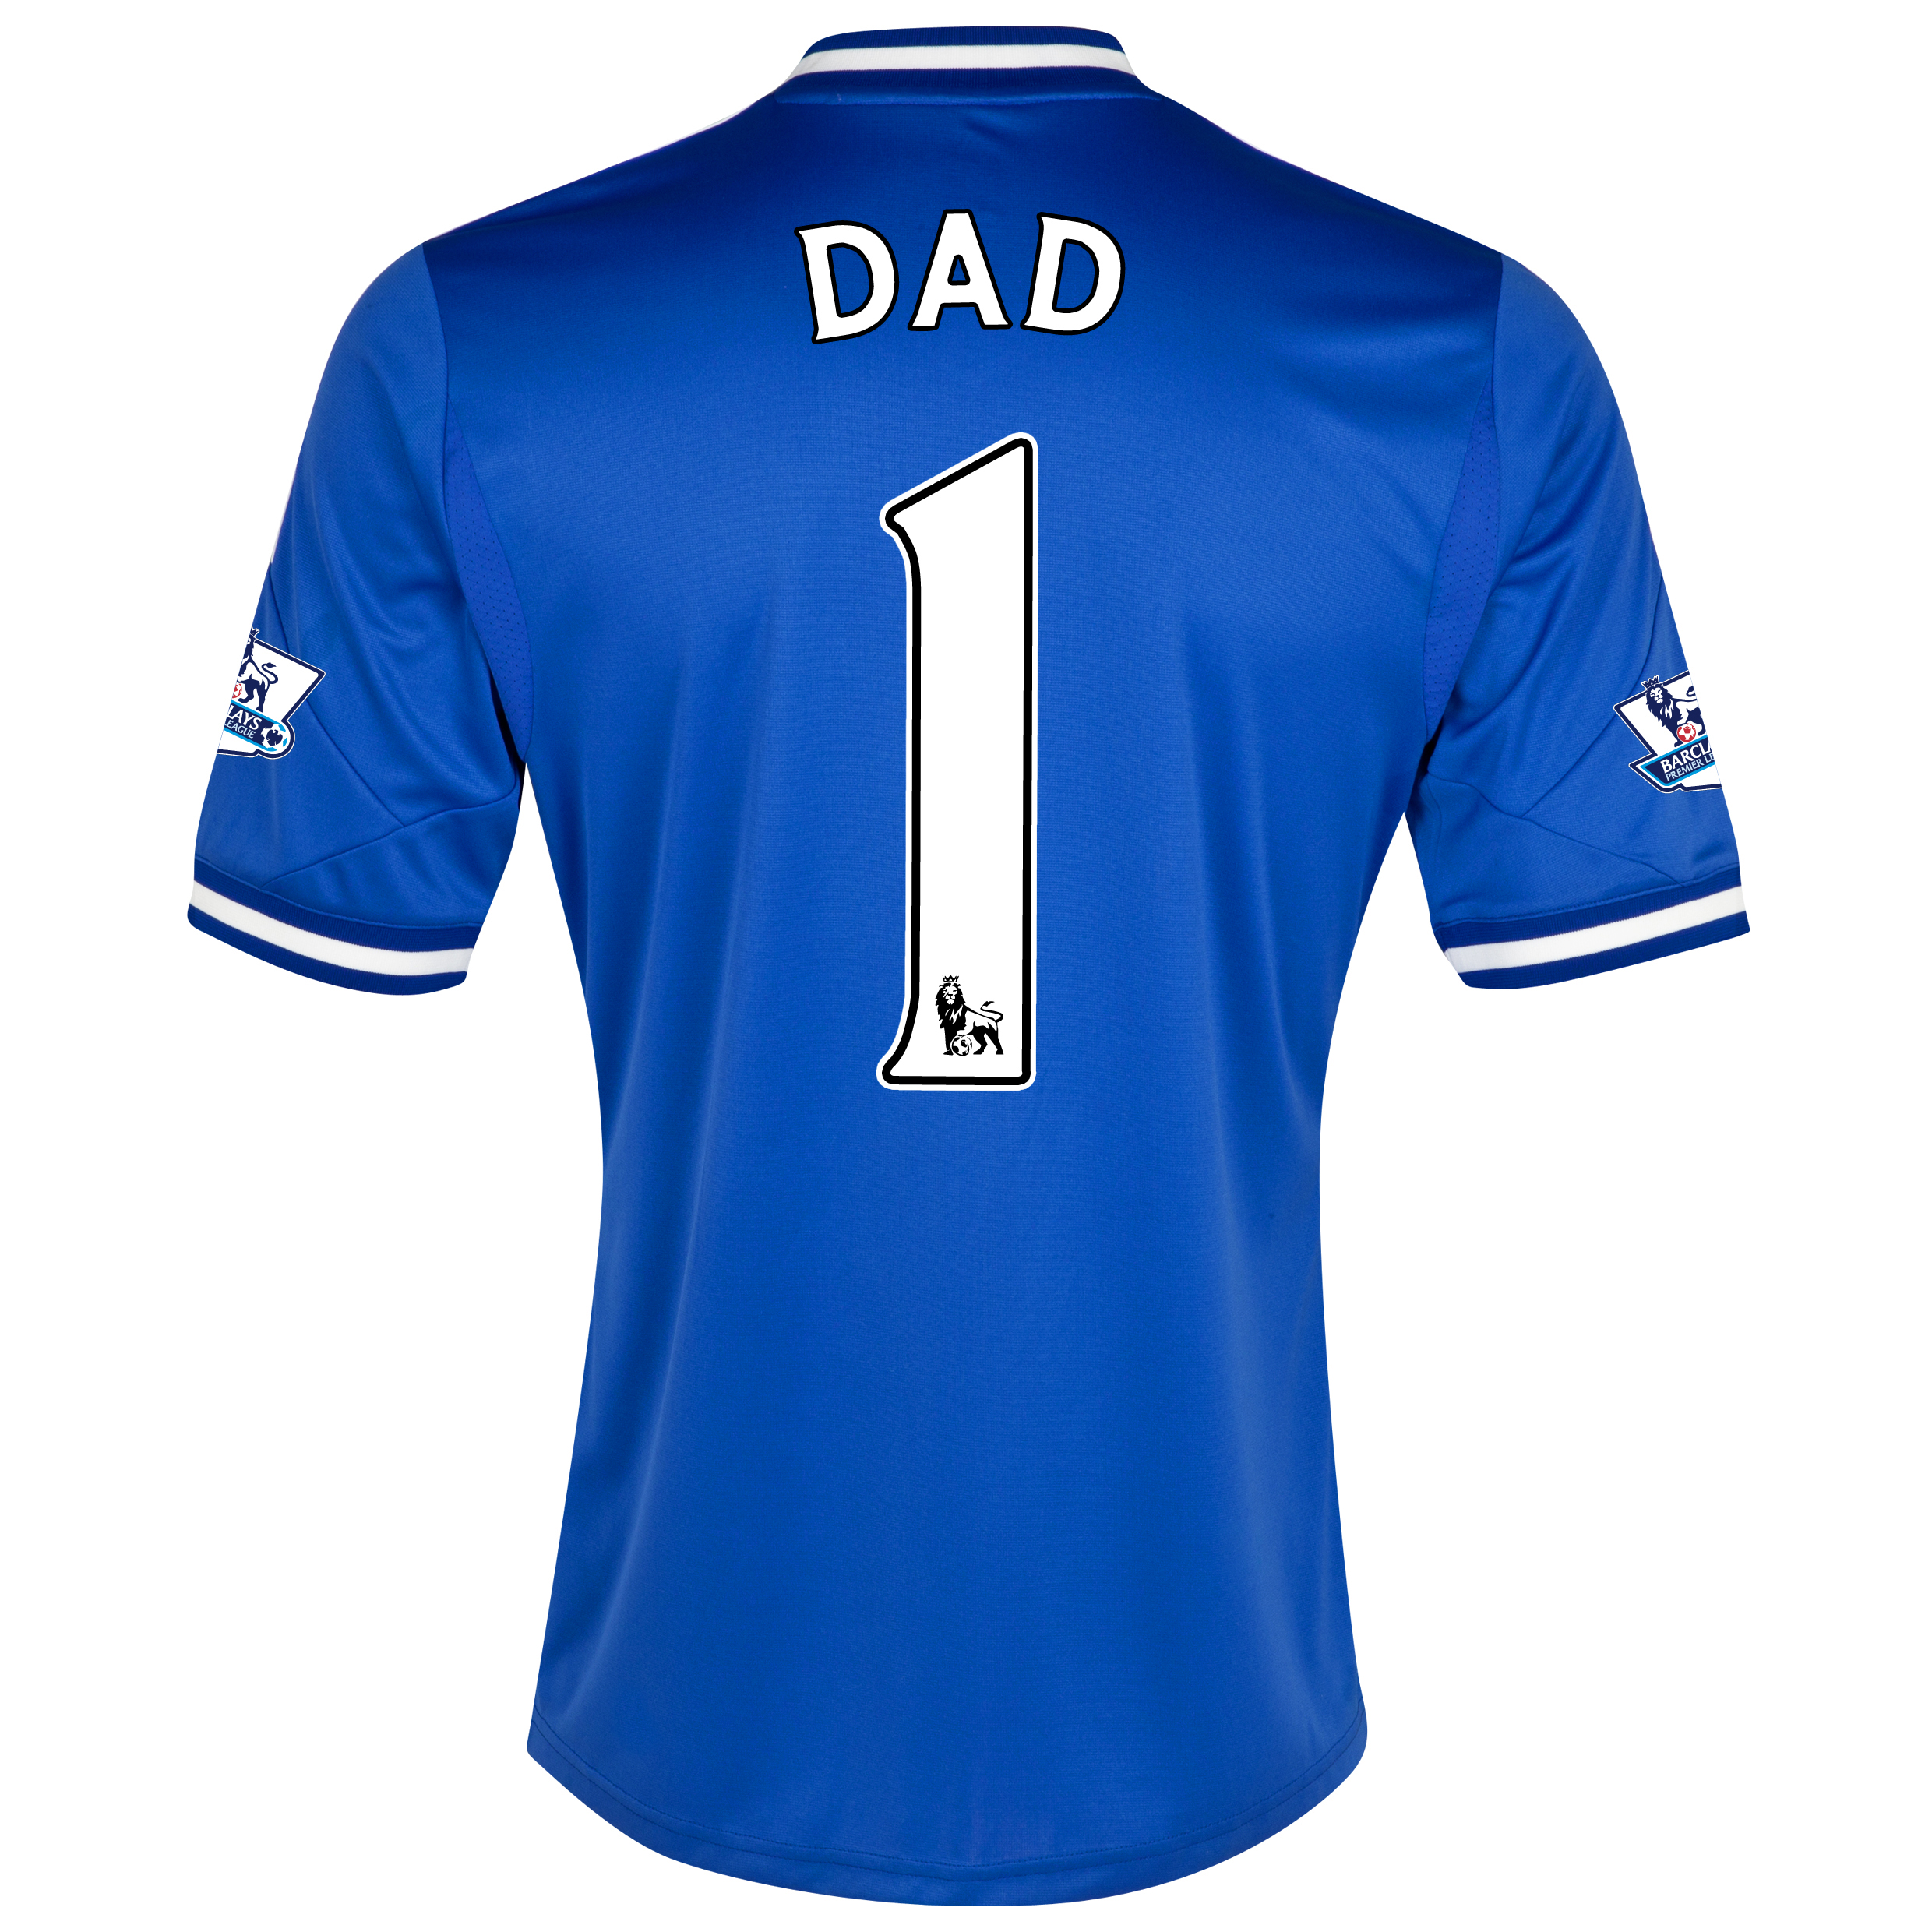 Chelsea Home Shirt 2013/14 with Dad 1 printing